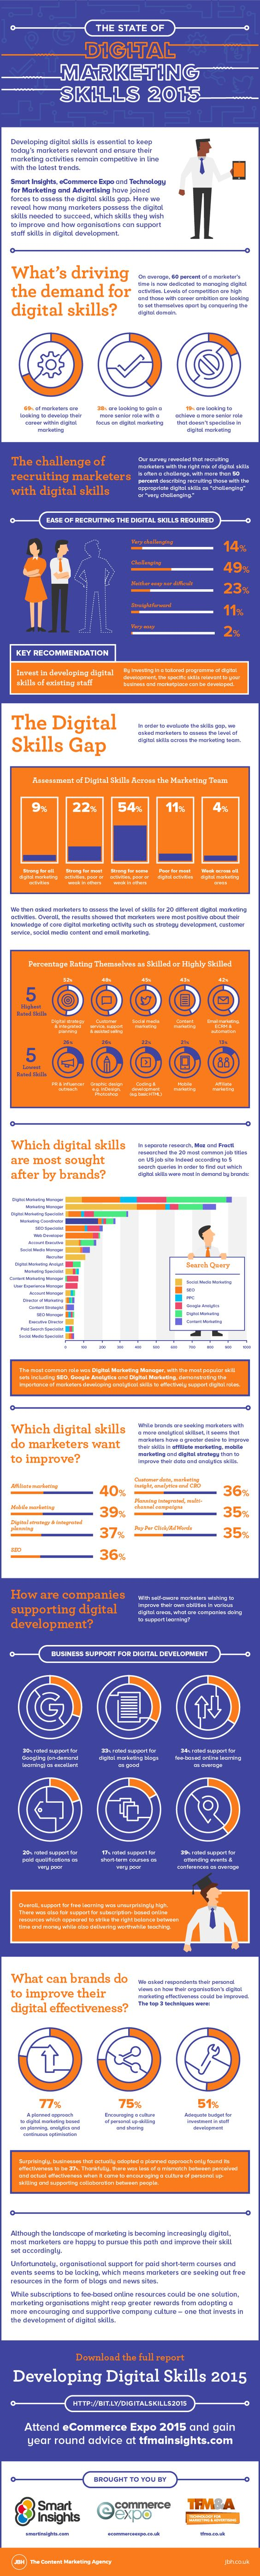 the state of digital marketing skills infographic this infographic reveals how many marketers possess the digital skills needed to succeed which skills